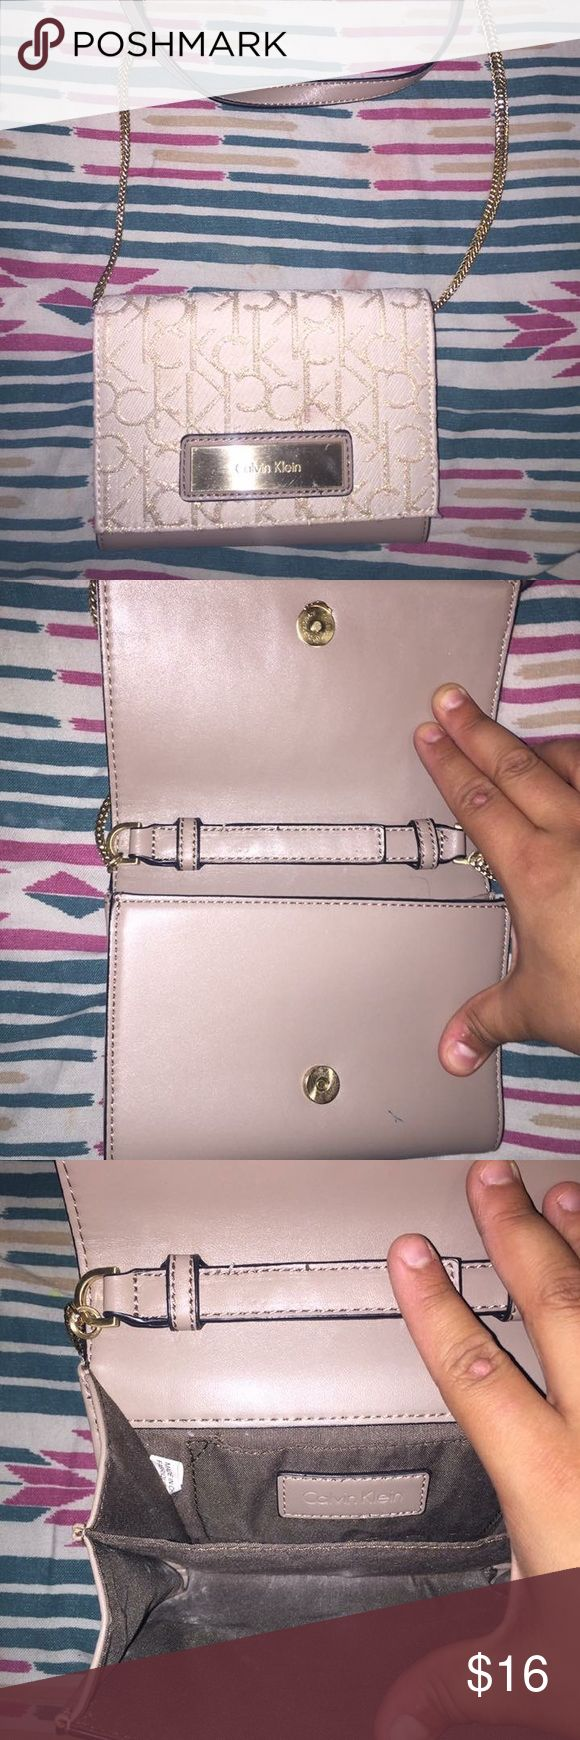 Calvin Klein Nude clutch Hardly worn Calvin Klein Clutch/cross body, there is nothing wrong with it. It looks used from the inside but from the outside is completely fine. I take reasonable offers. Calvin Klein Bags Crossbody Bags